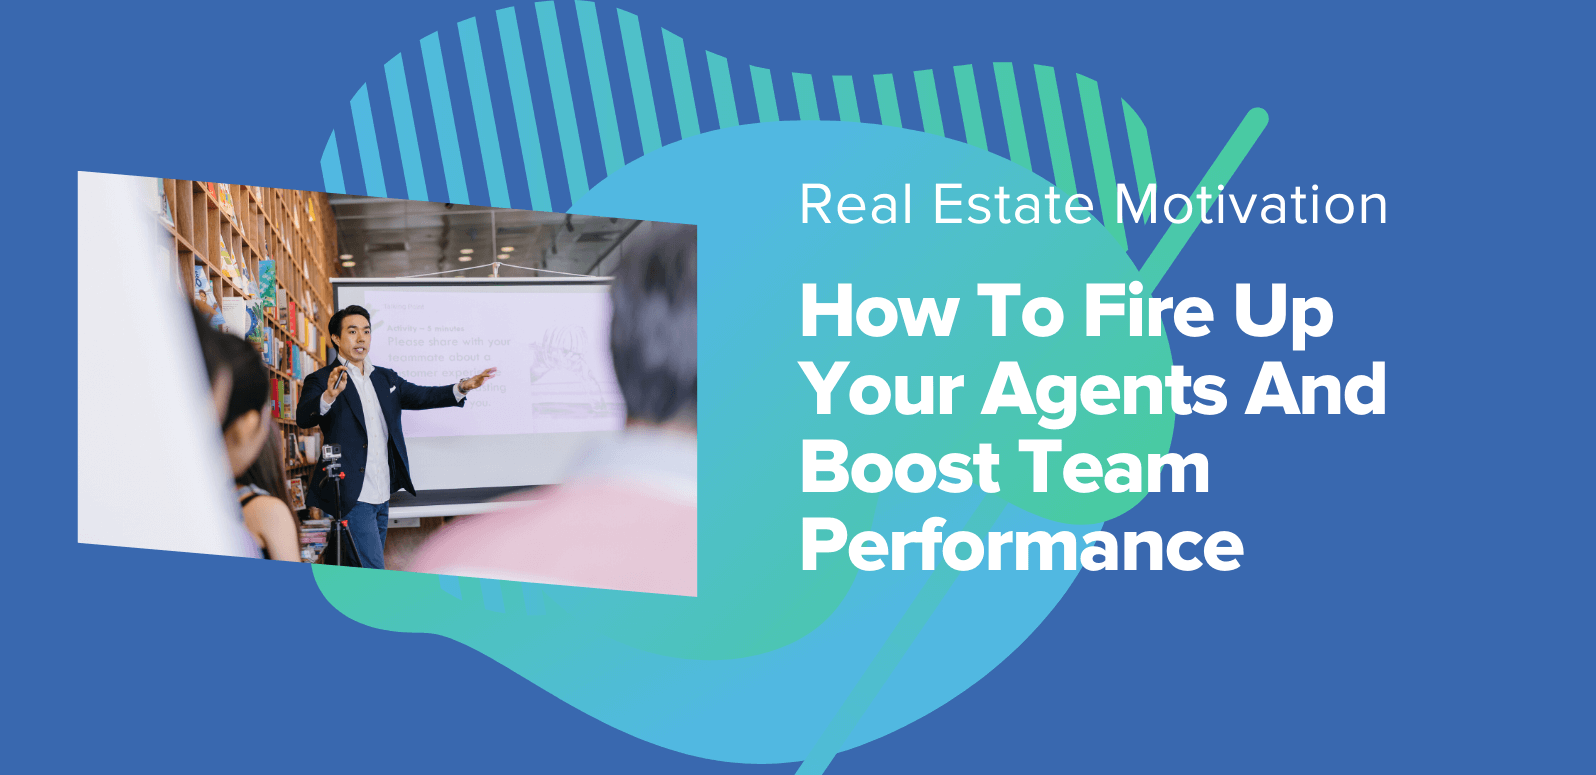 Real Estate Motivation: How To Fire Up Your Agents And Boost Team Performance